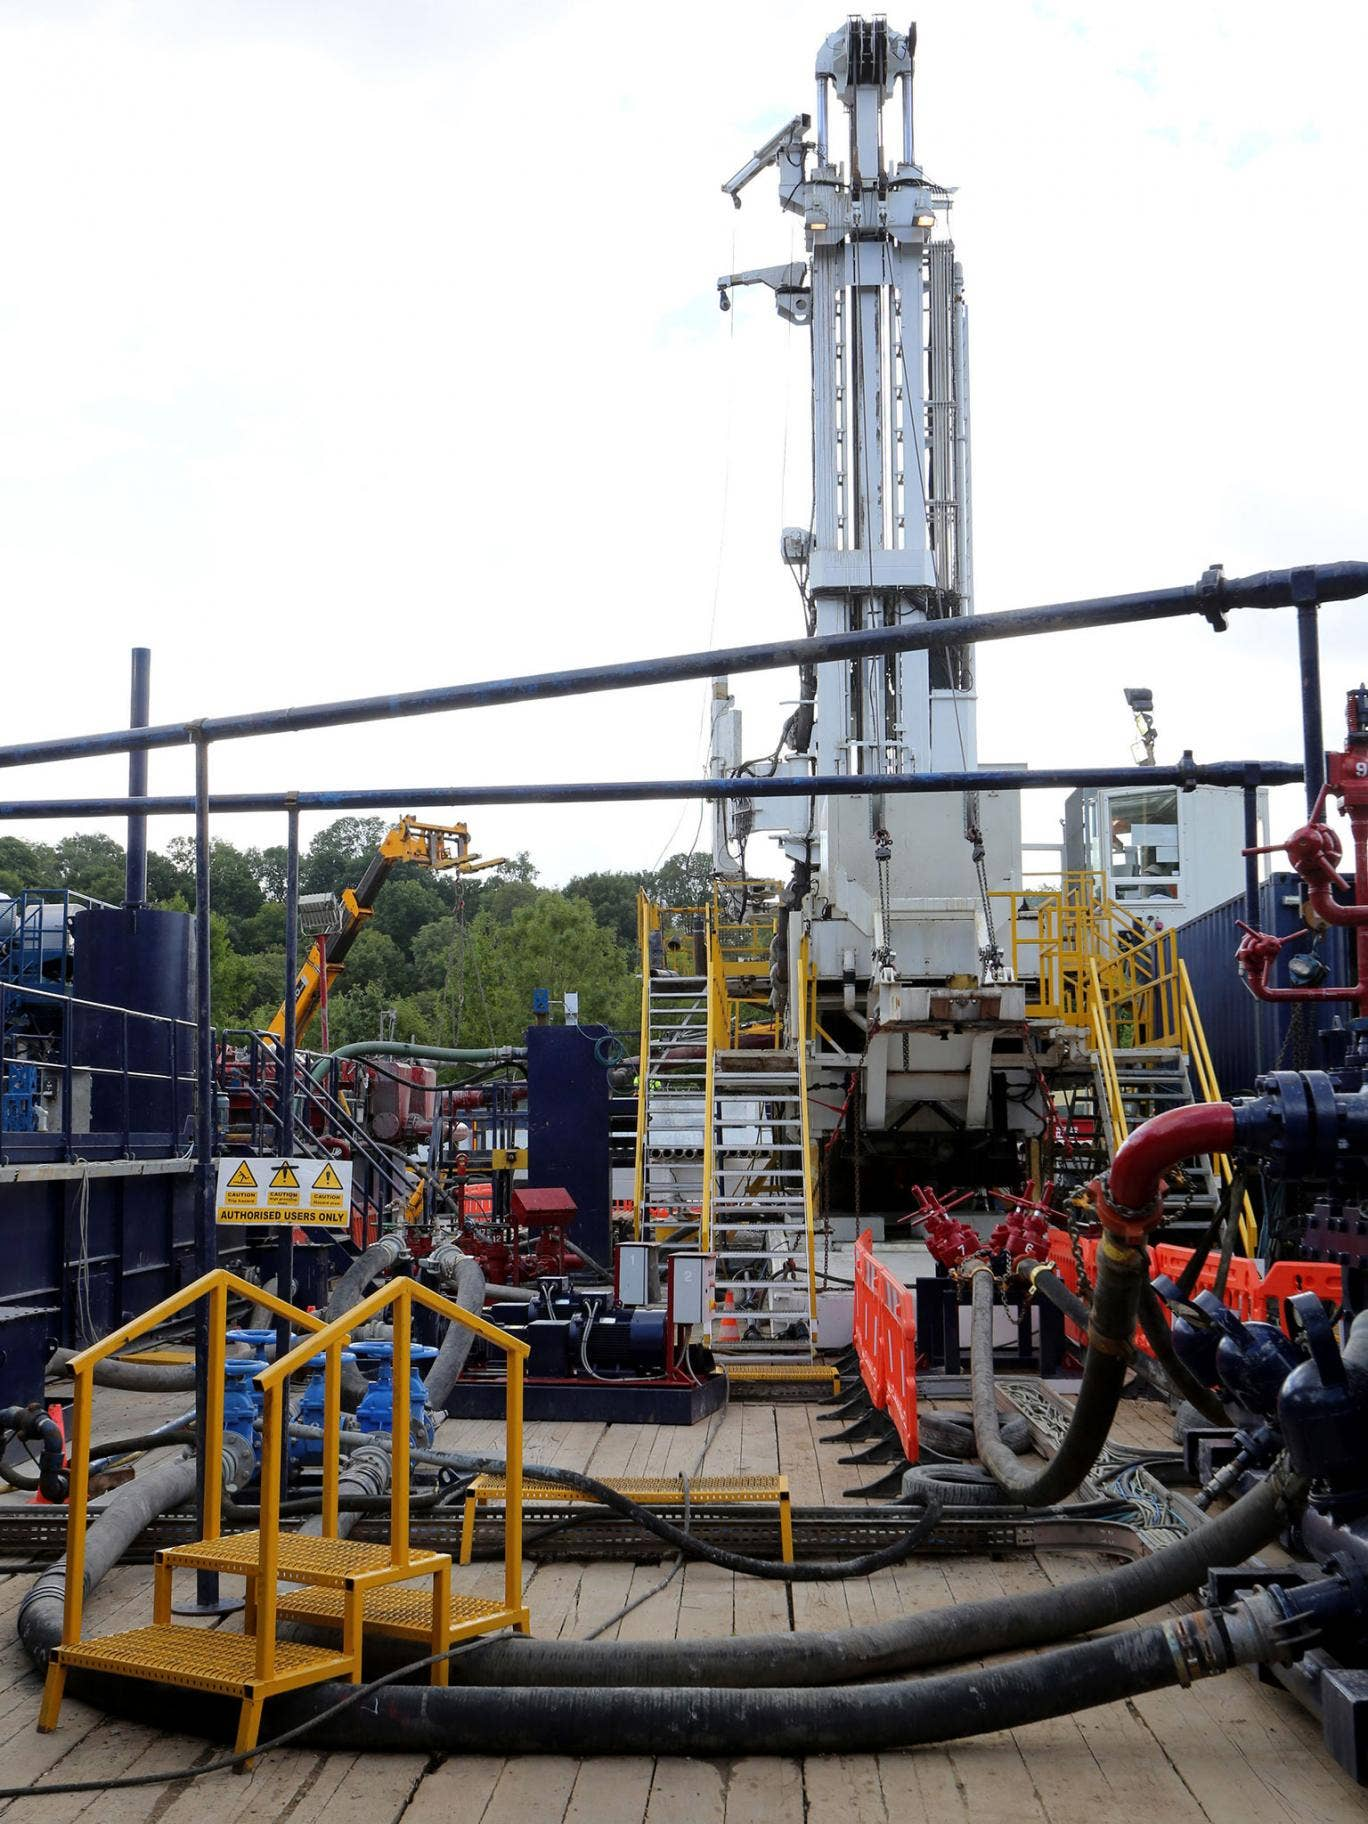 The Cuadrilla exploration drilling site in Balcombe, West Sussex. The latest bidding process for shale companies seeking licences to explore for oil and gas has opened